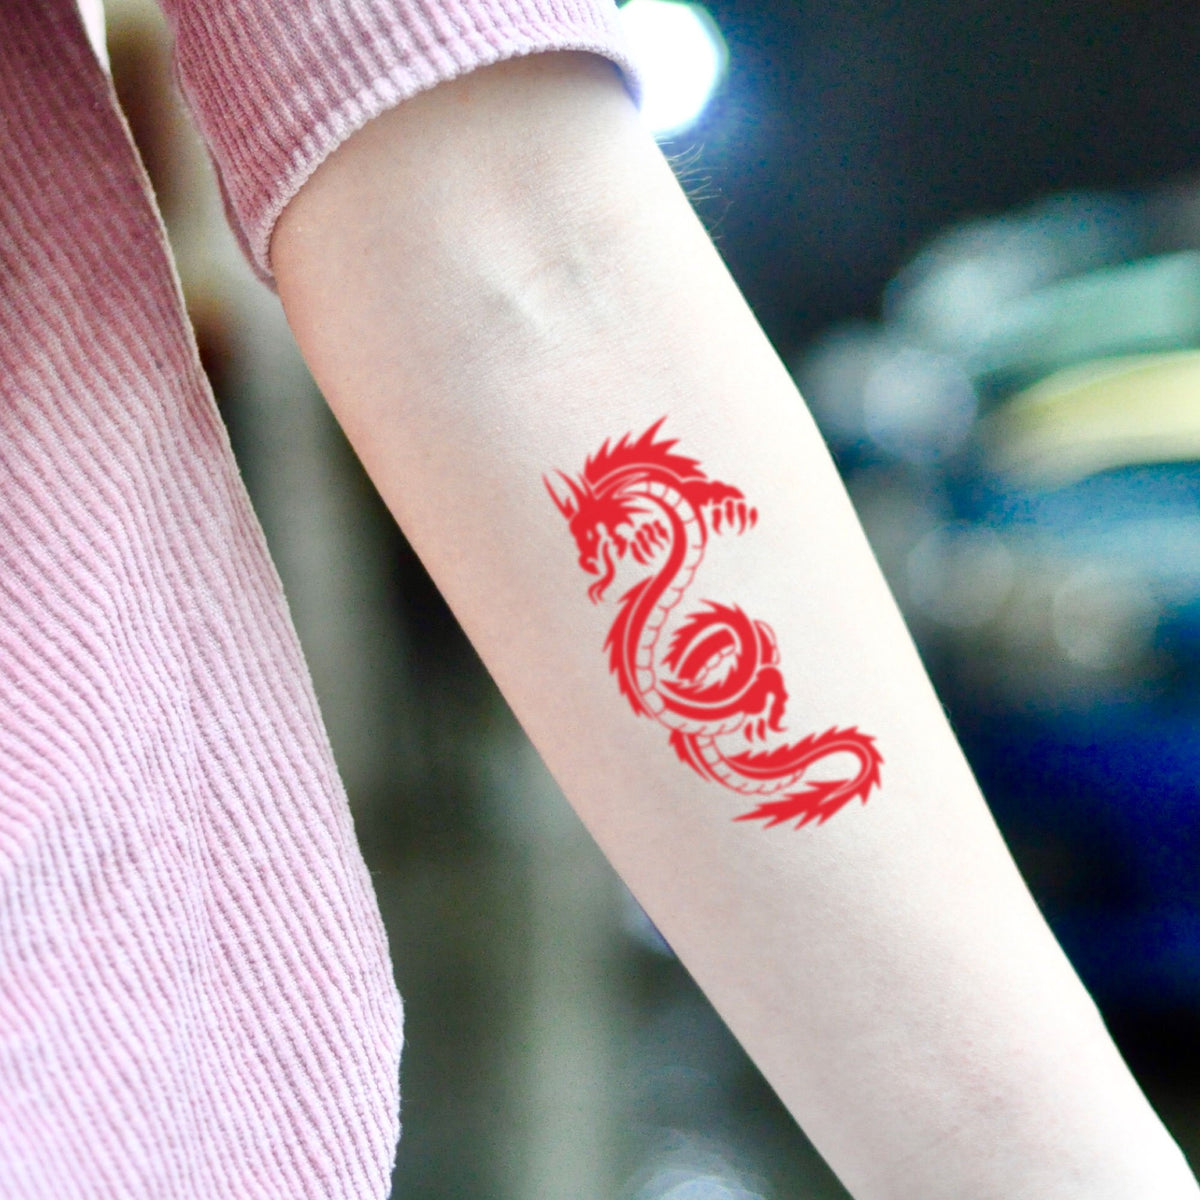 Red Dragon Temporary Tattoo Sticker Ohmytat They can be illustrated in a wide variety of colors and styles. ohmytat